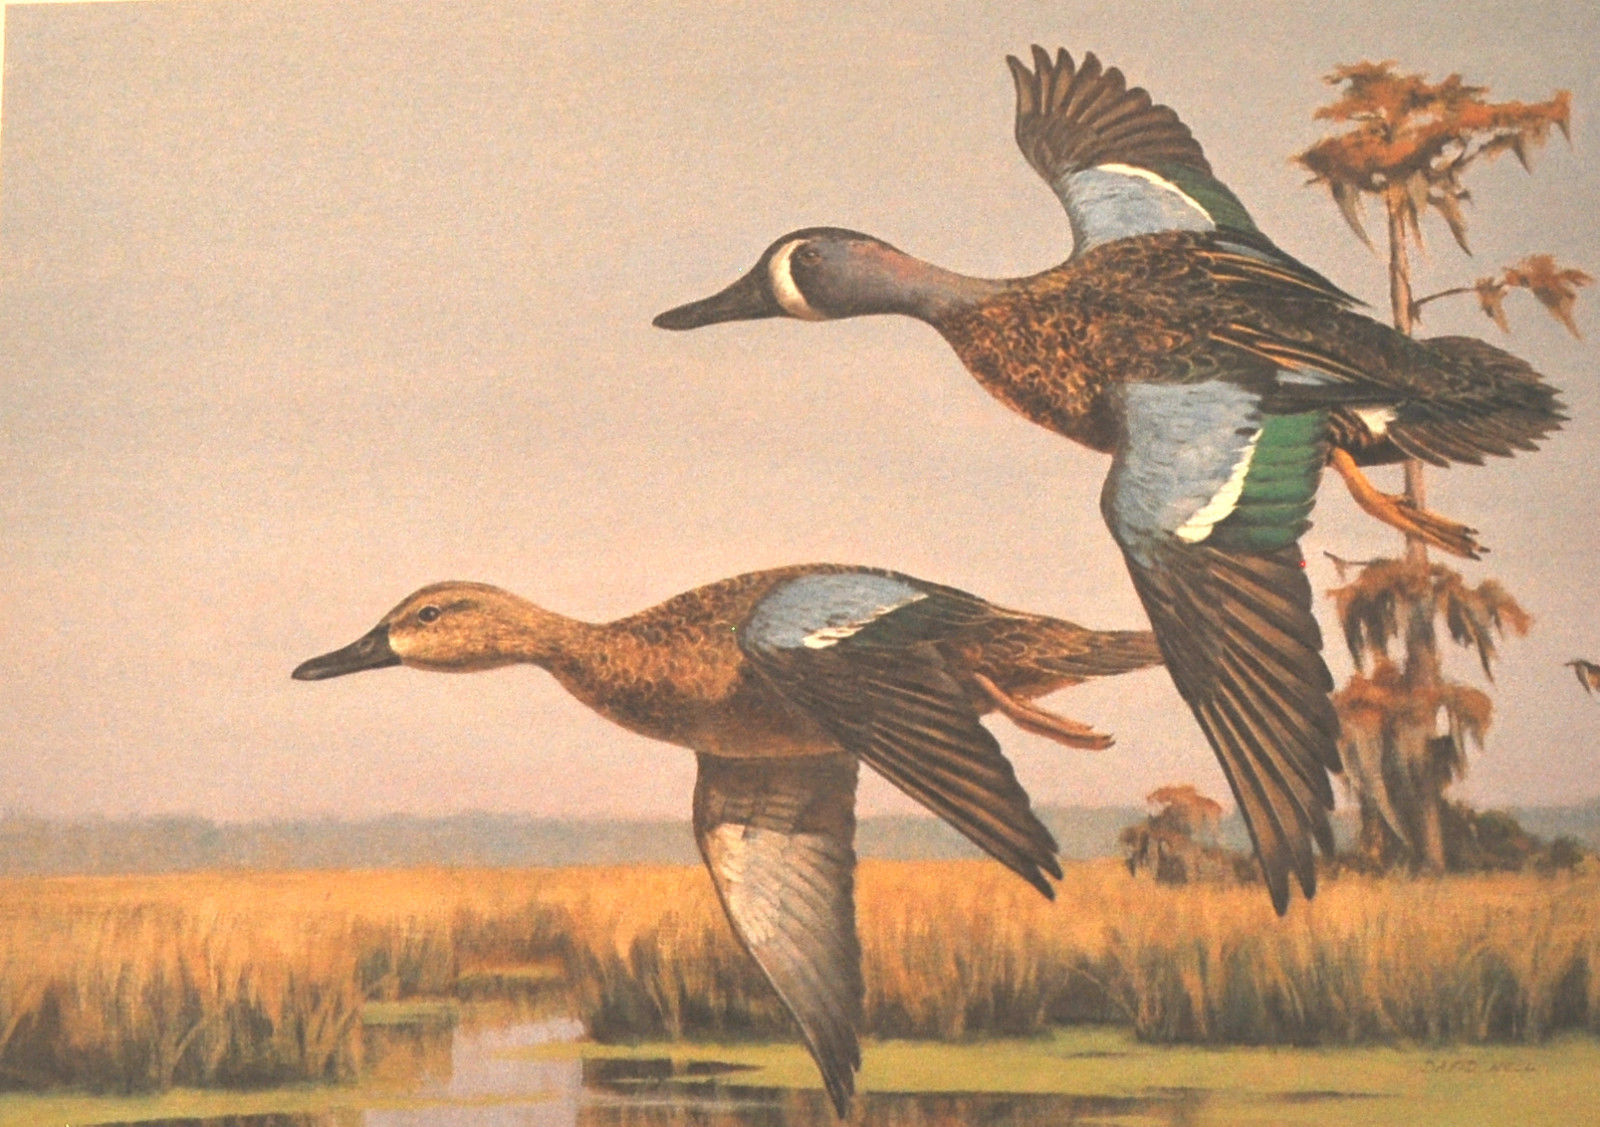 David Noll, 1989 Louisiana Waterfowl Conservation Stamp